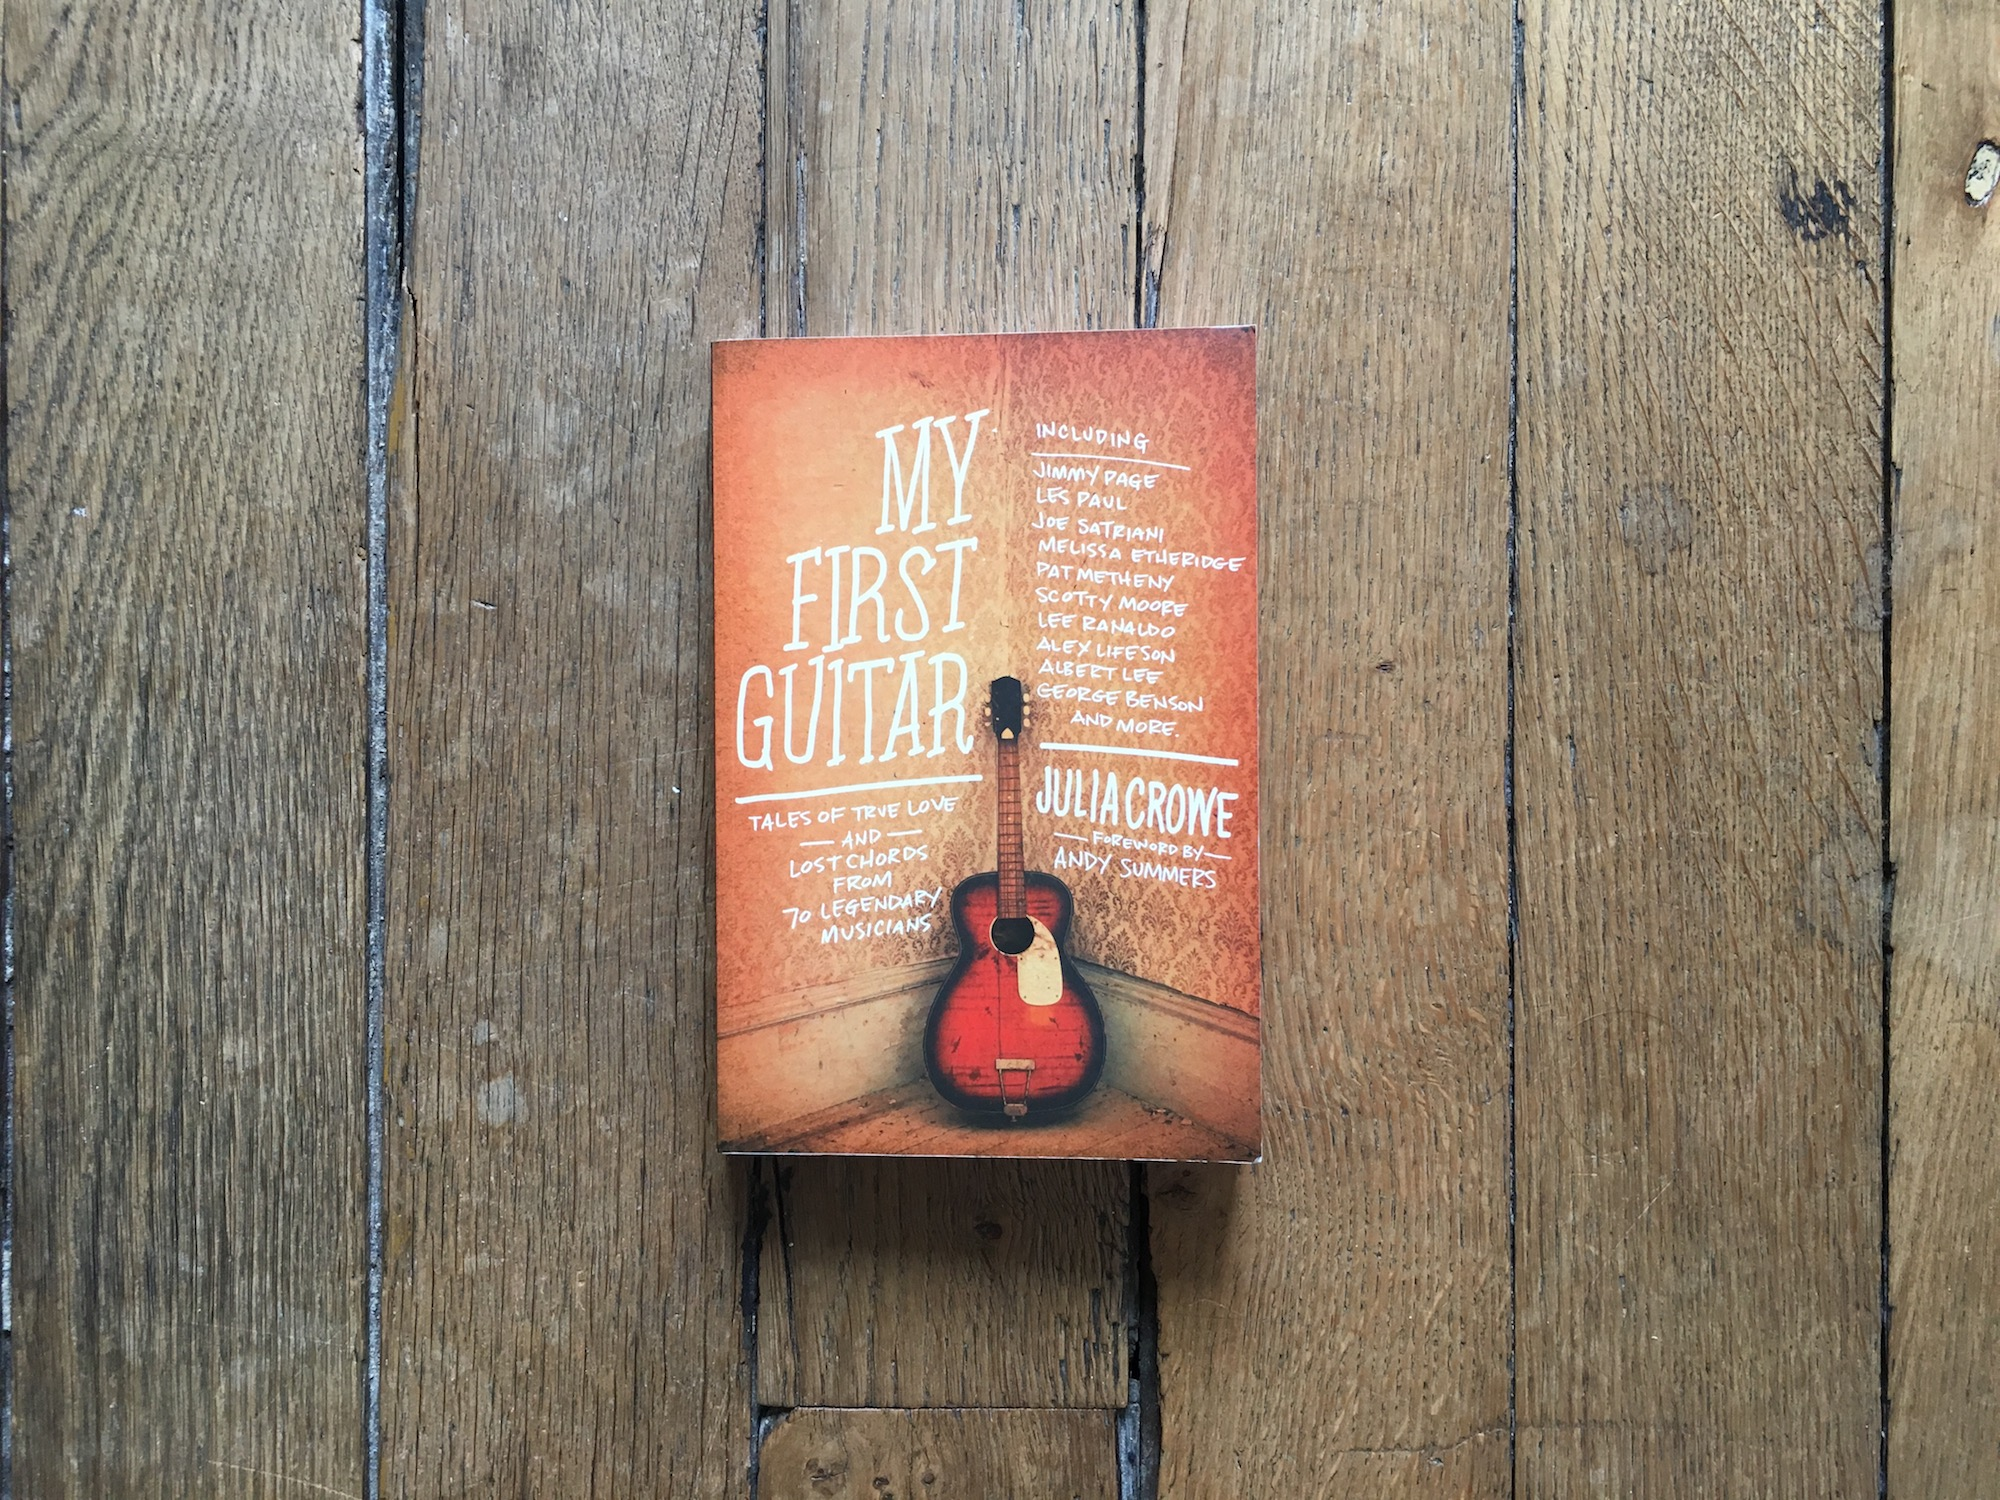 julia crowe interview author of the book my first guitar the guitar channel. Black Bedroom Furniture Sets. Home Design Ideas